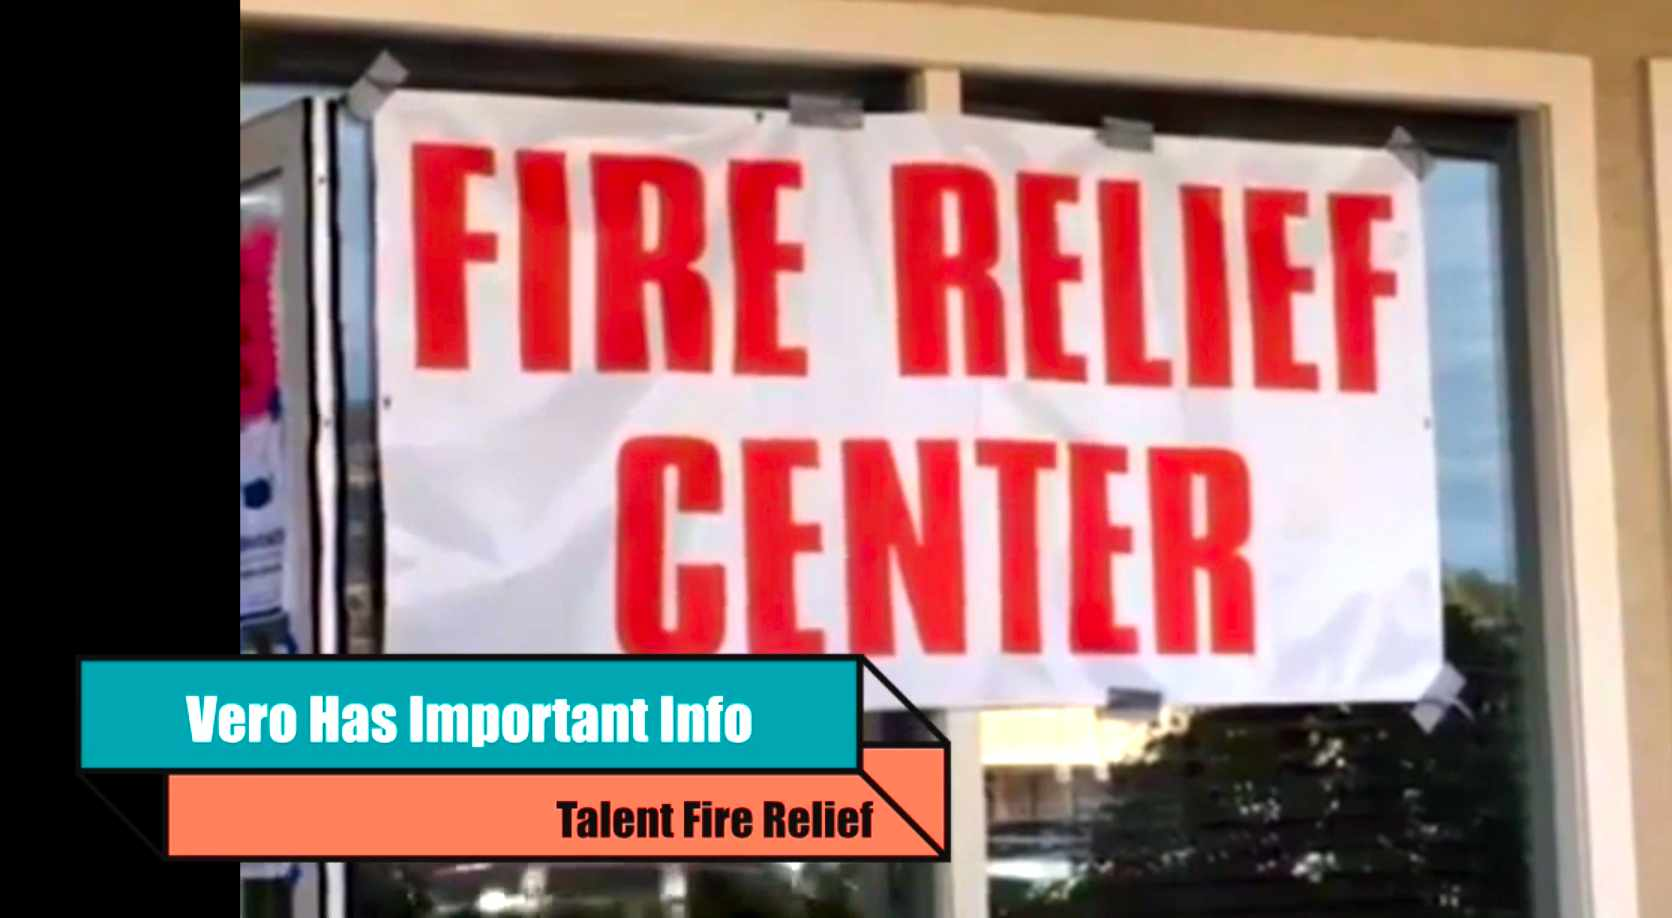 Talent Fire Relief station